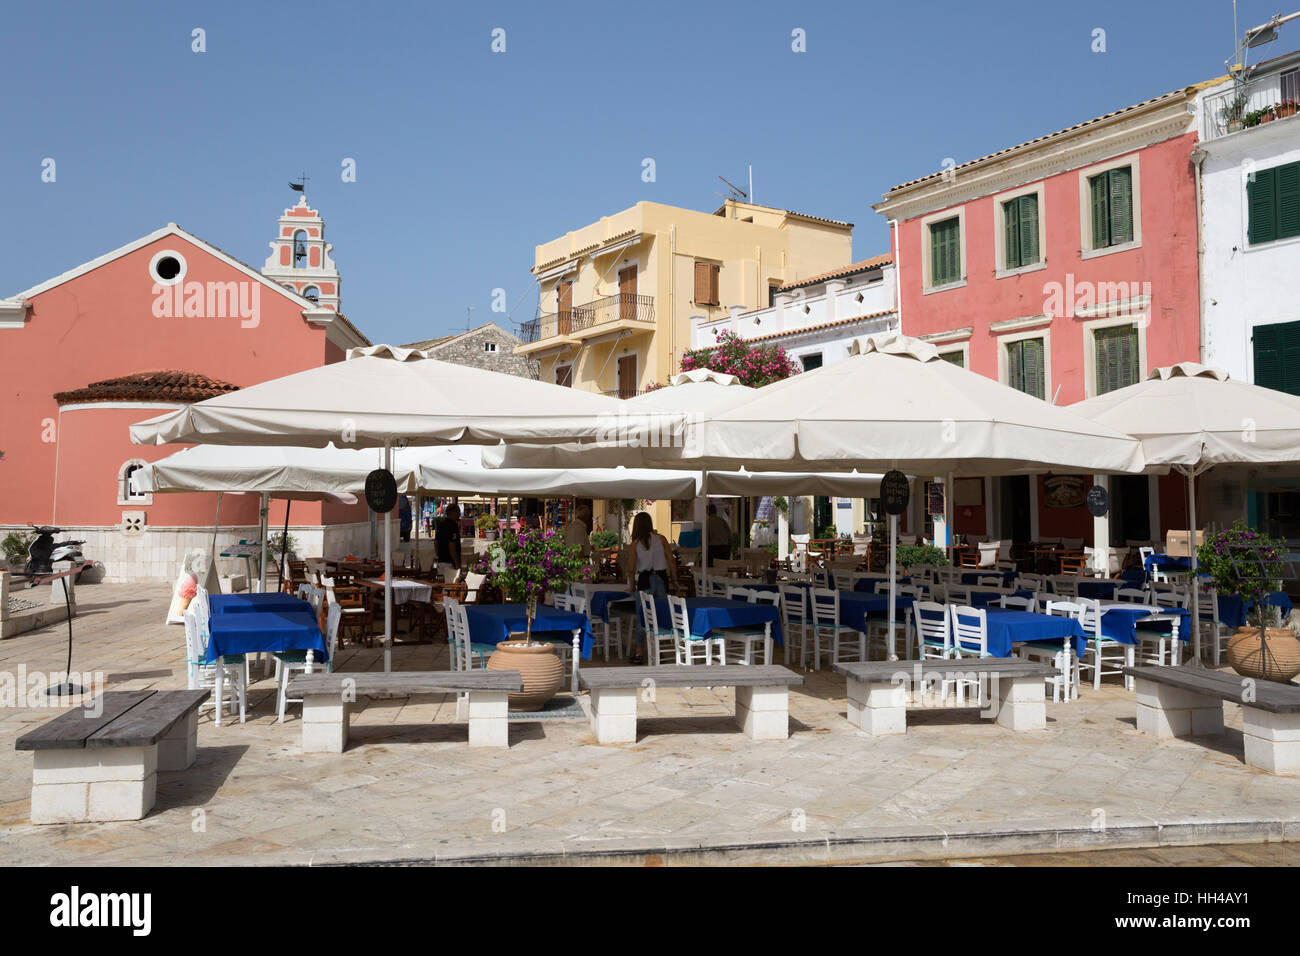 Cafes and restaurants in main square of Gaios town, Paxos, Ionian Islands, Greek Islands, Greece, Europe Stock Photo